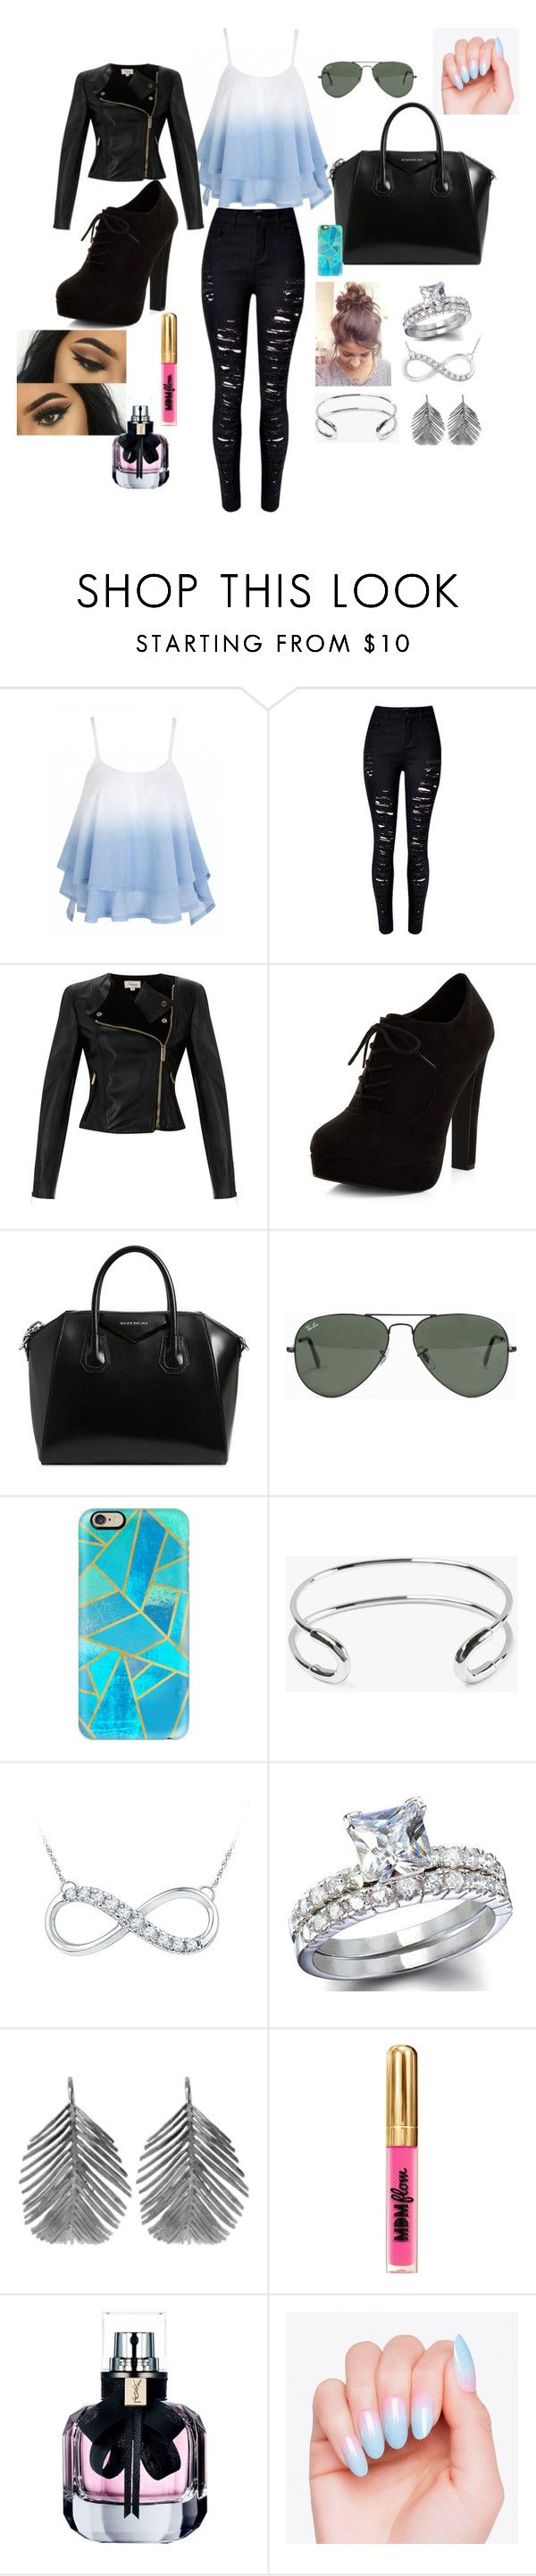 Fashion by izabels2003 on Polyvore featuring Temperley London, WithChic, New Look, Givenchy, Alex Monroe, Giles & Brother, Ray-Ban, Casetify, MDMflow and Yves Saint Laurent